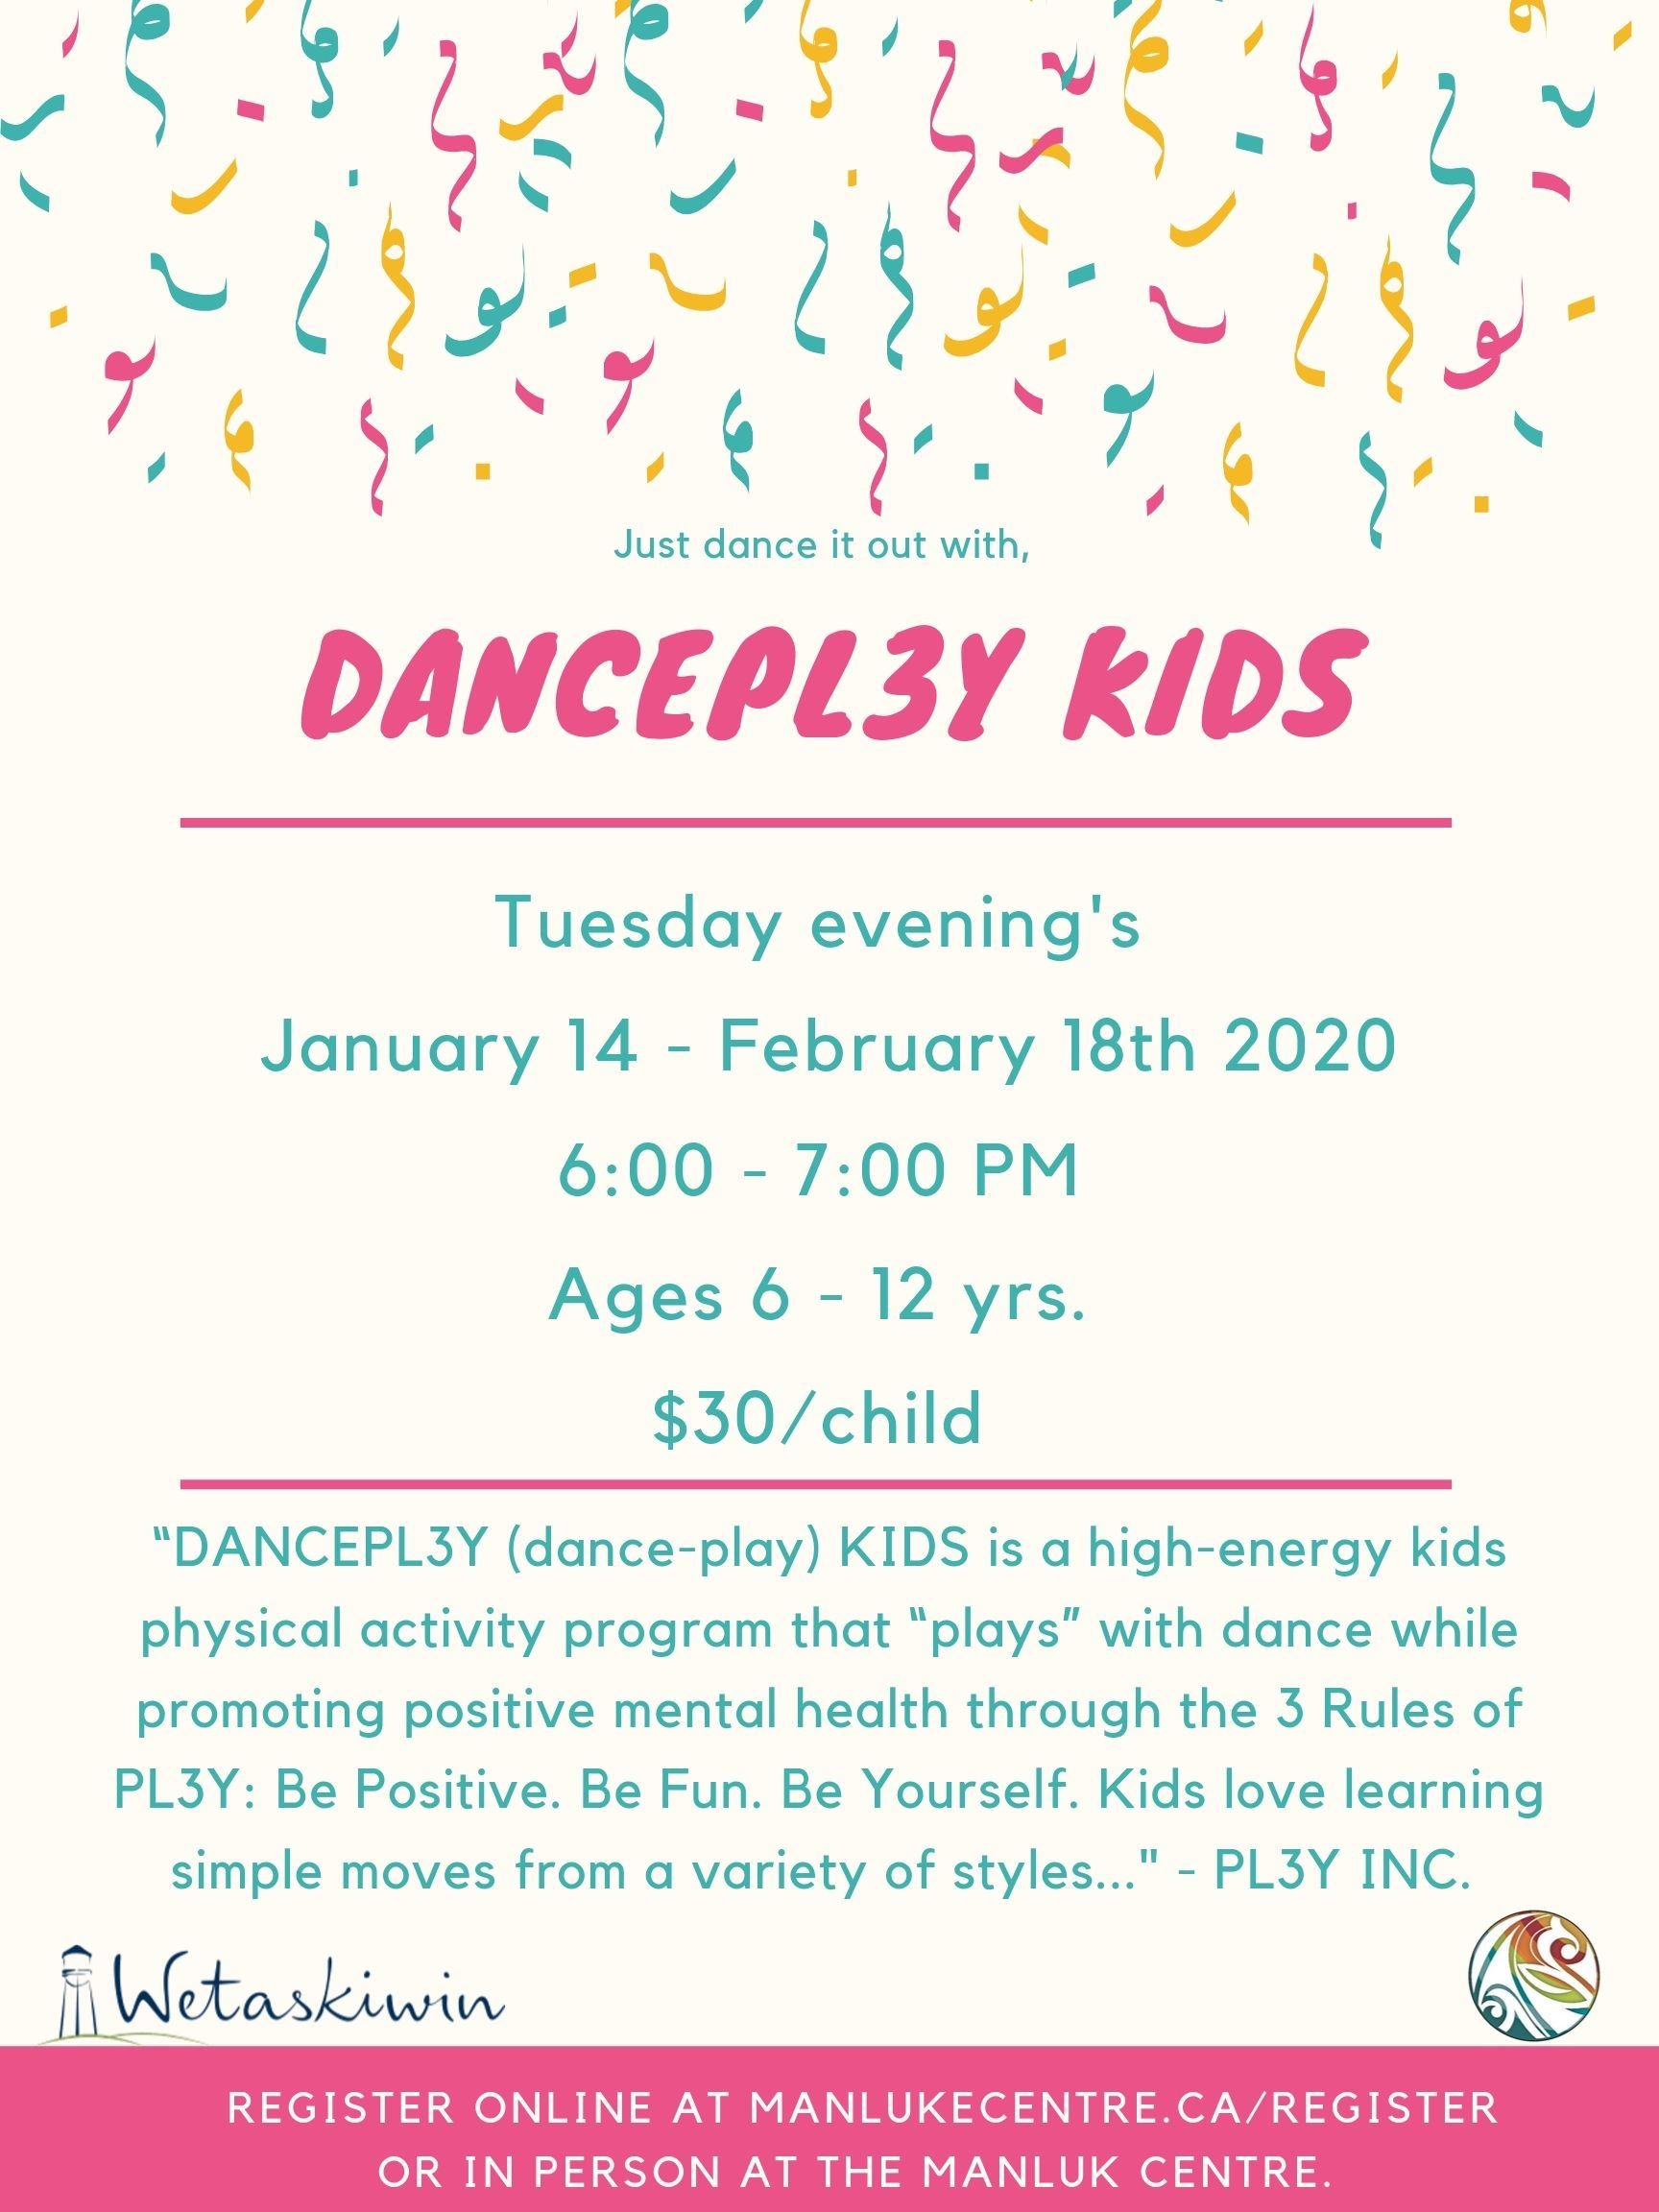 DANCEPL3Y KIDS_ Jan 14 - Feb 18 2020